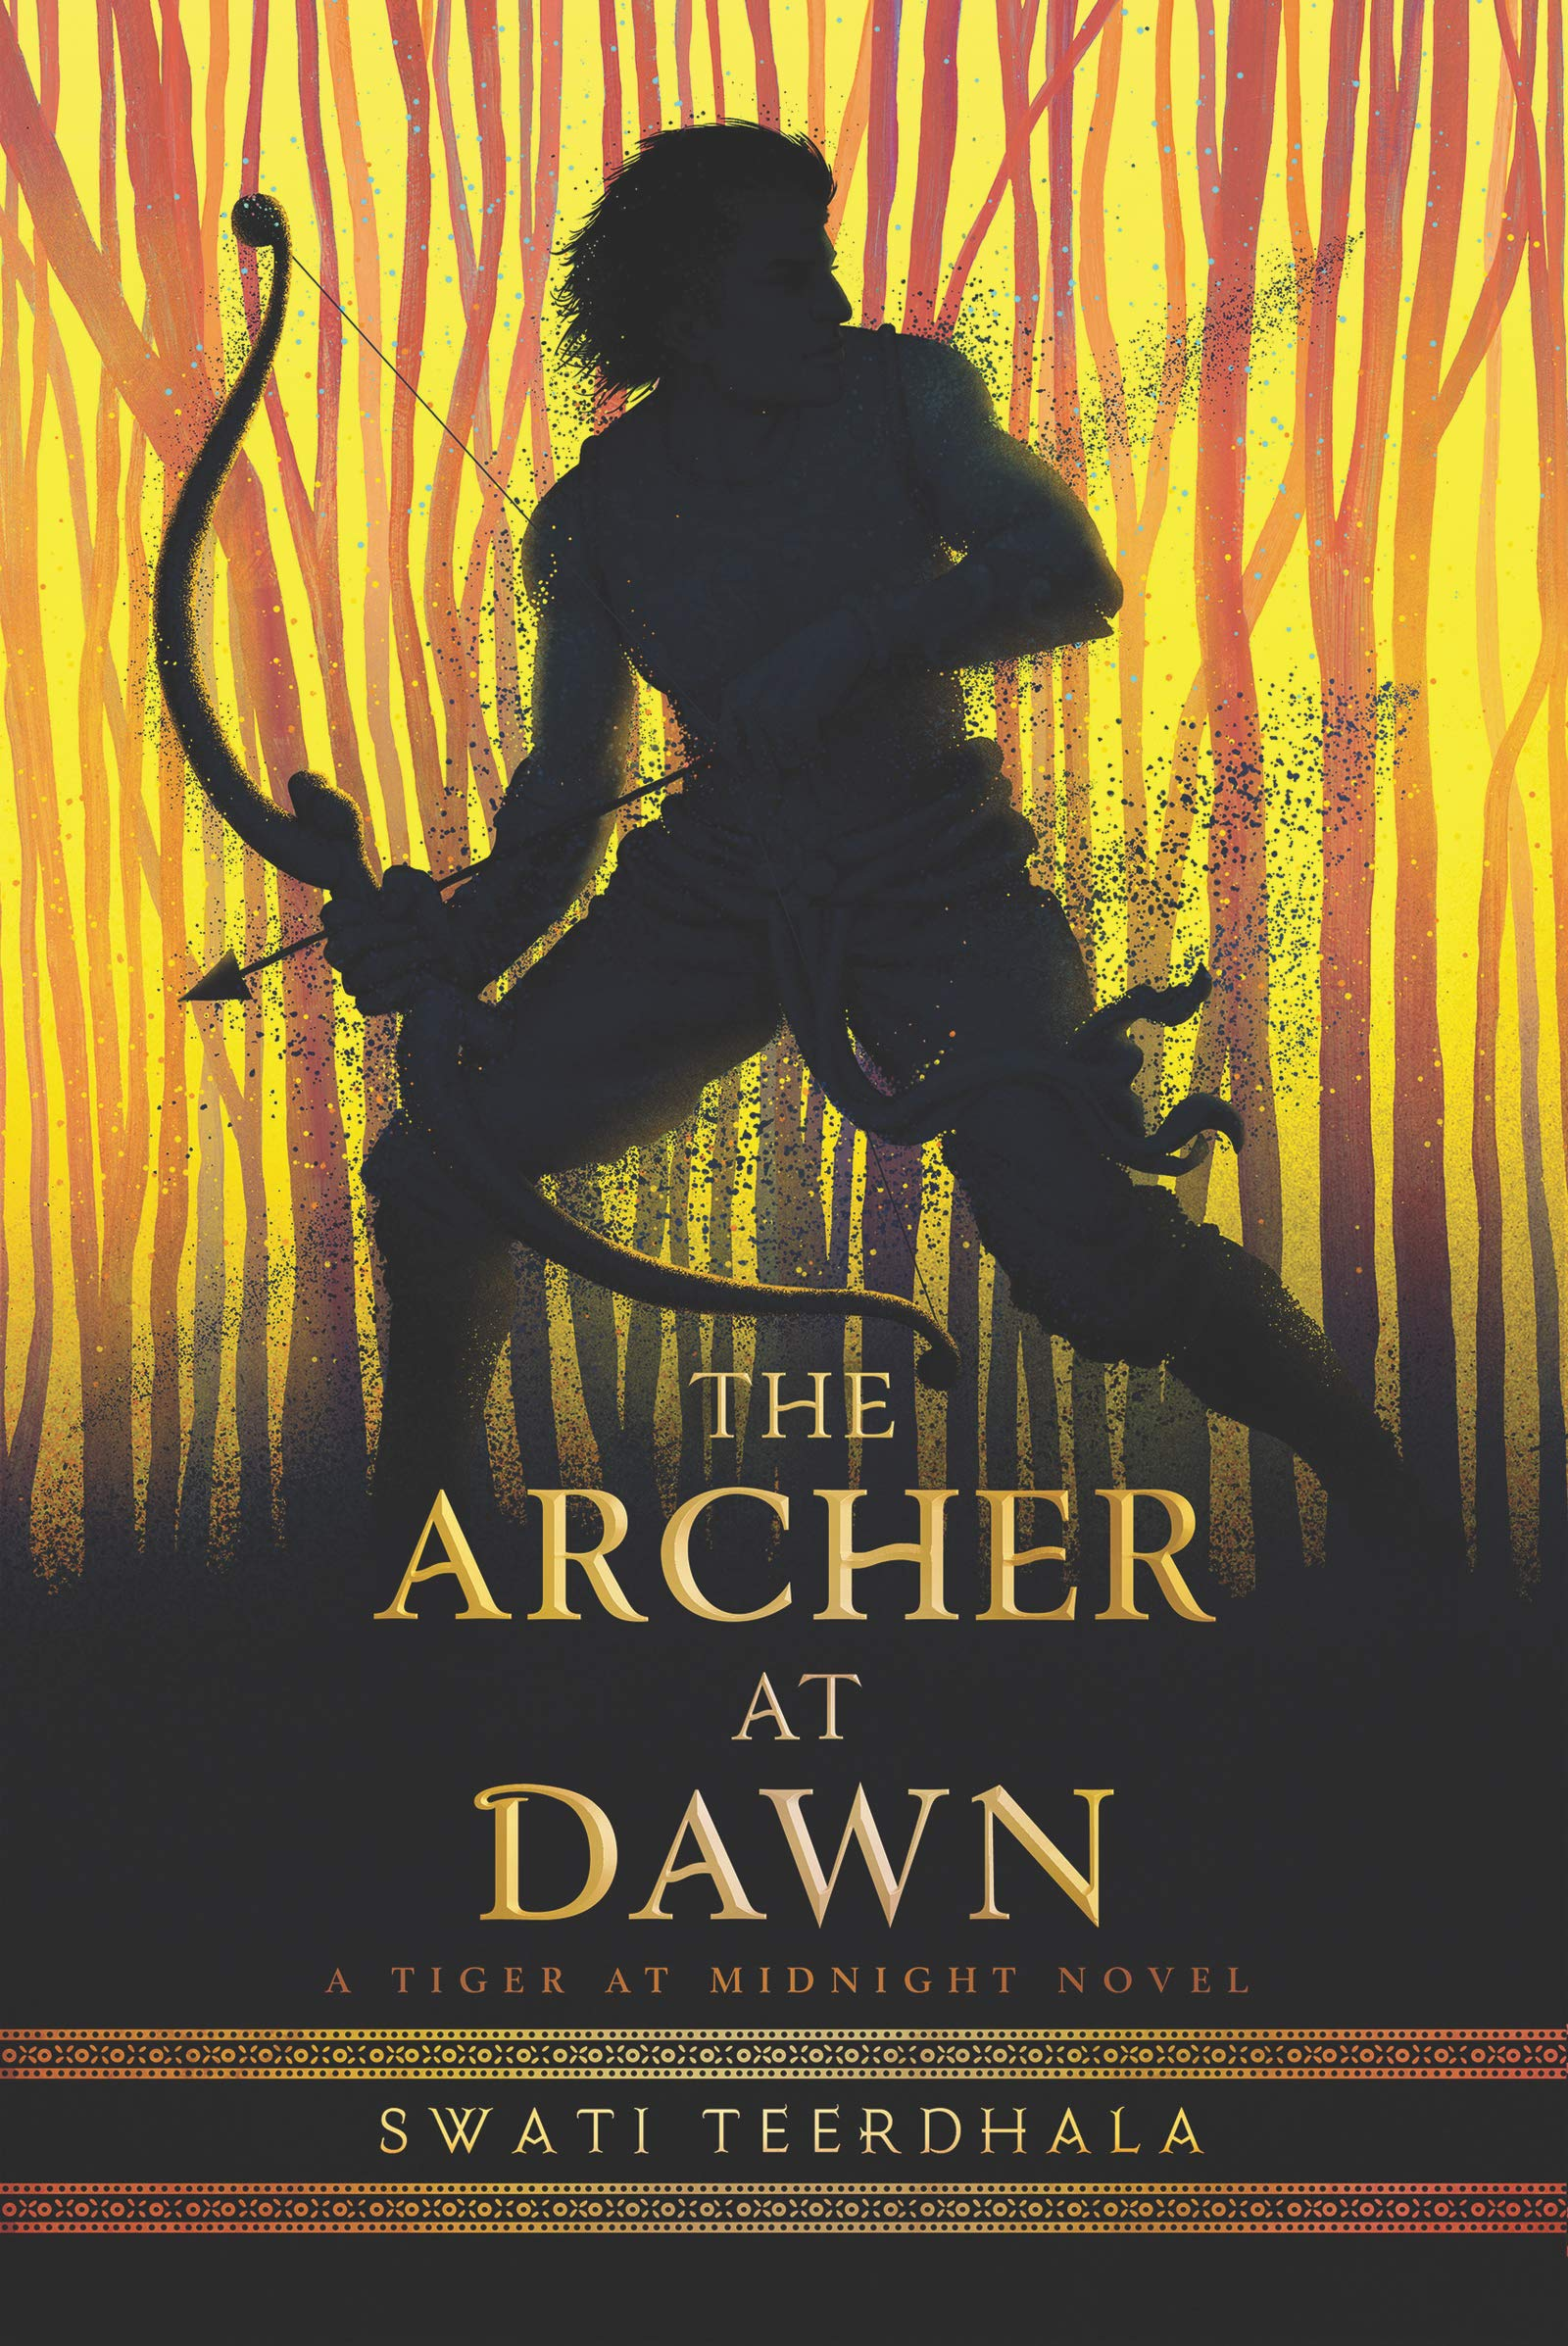 Amazon.com: The Archer at Dawn (Tiger at Midnight) (9780062869241 ...